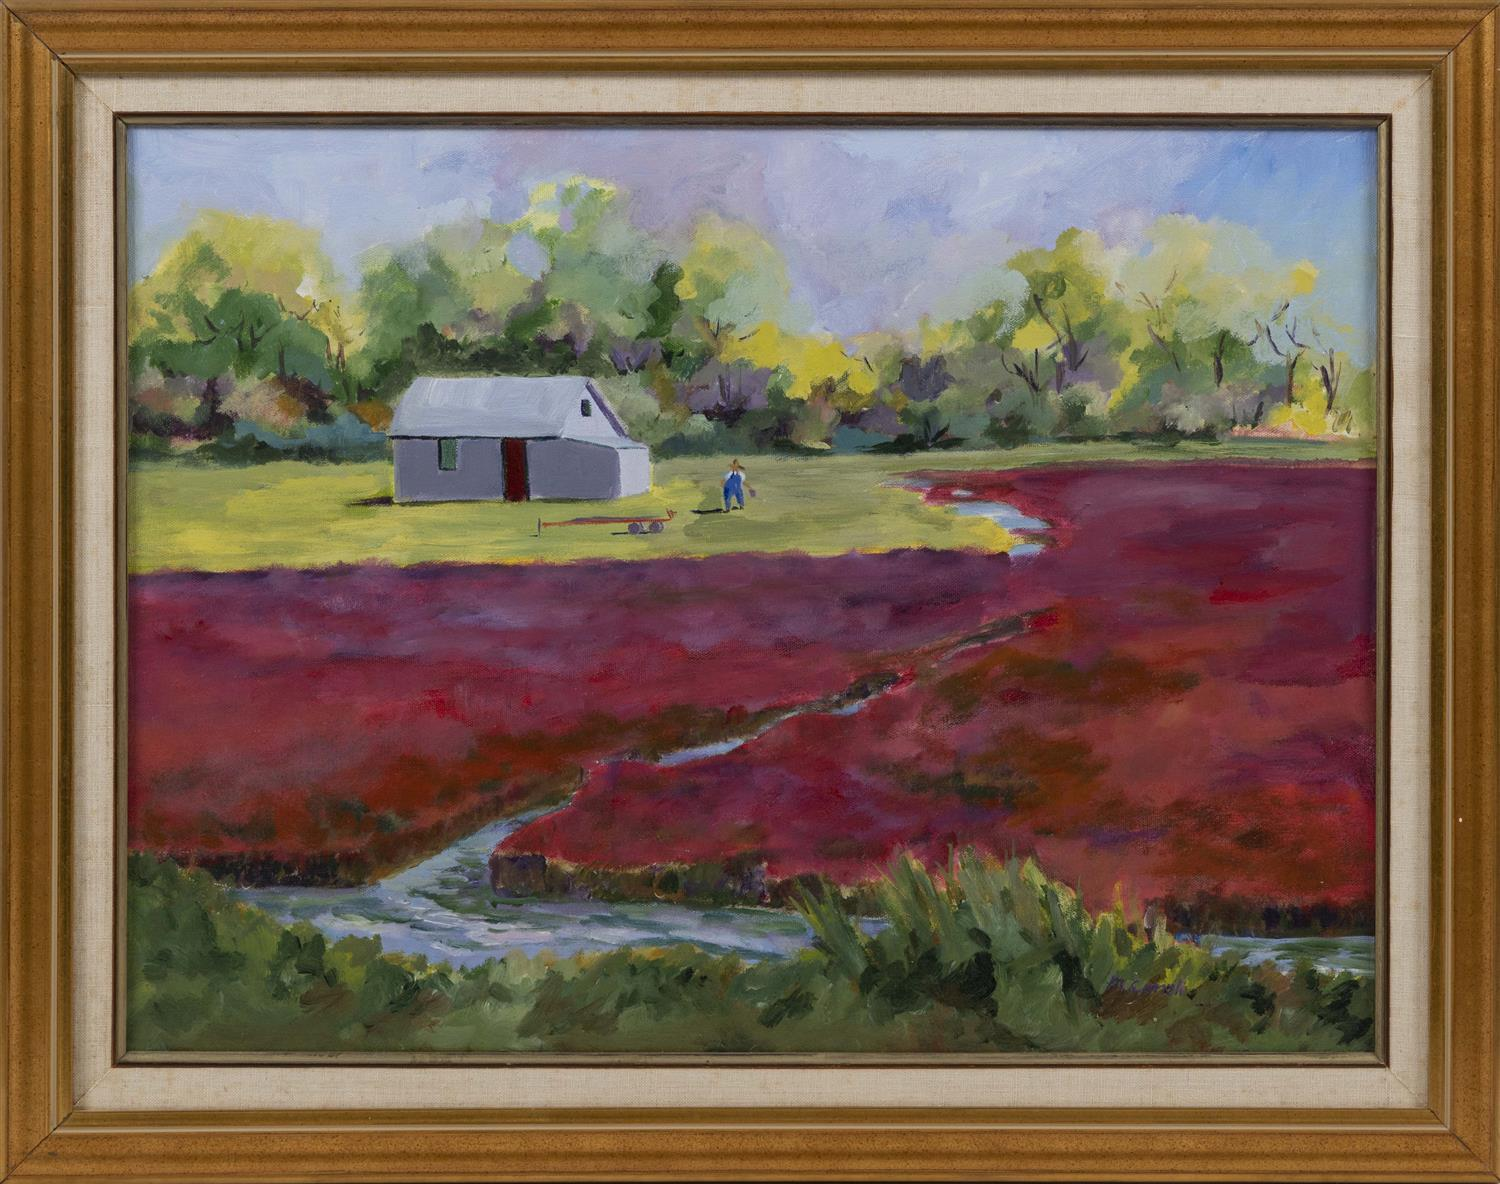 "CAPE COD SCHOOL, Contemporary, Working the cranberry bog., Oil on canvas, 18"" x 24"". Framed 23"" x 28""."